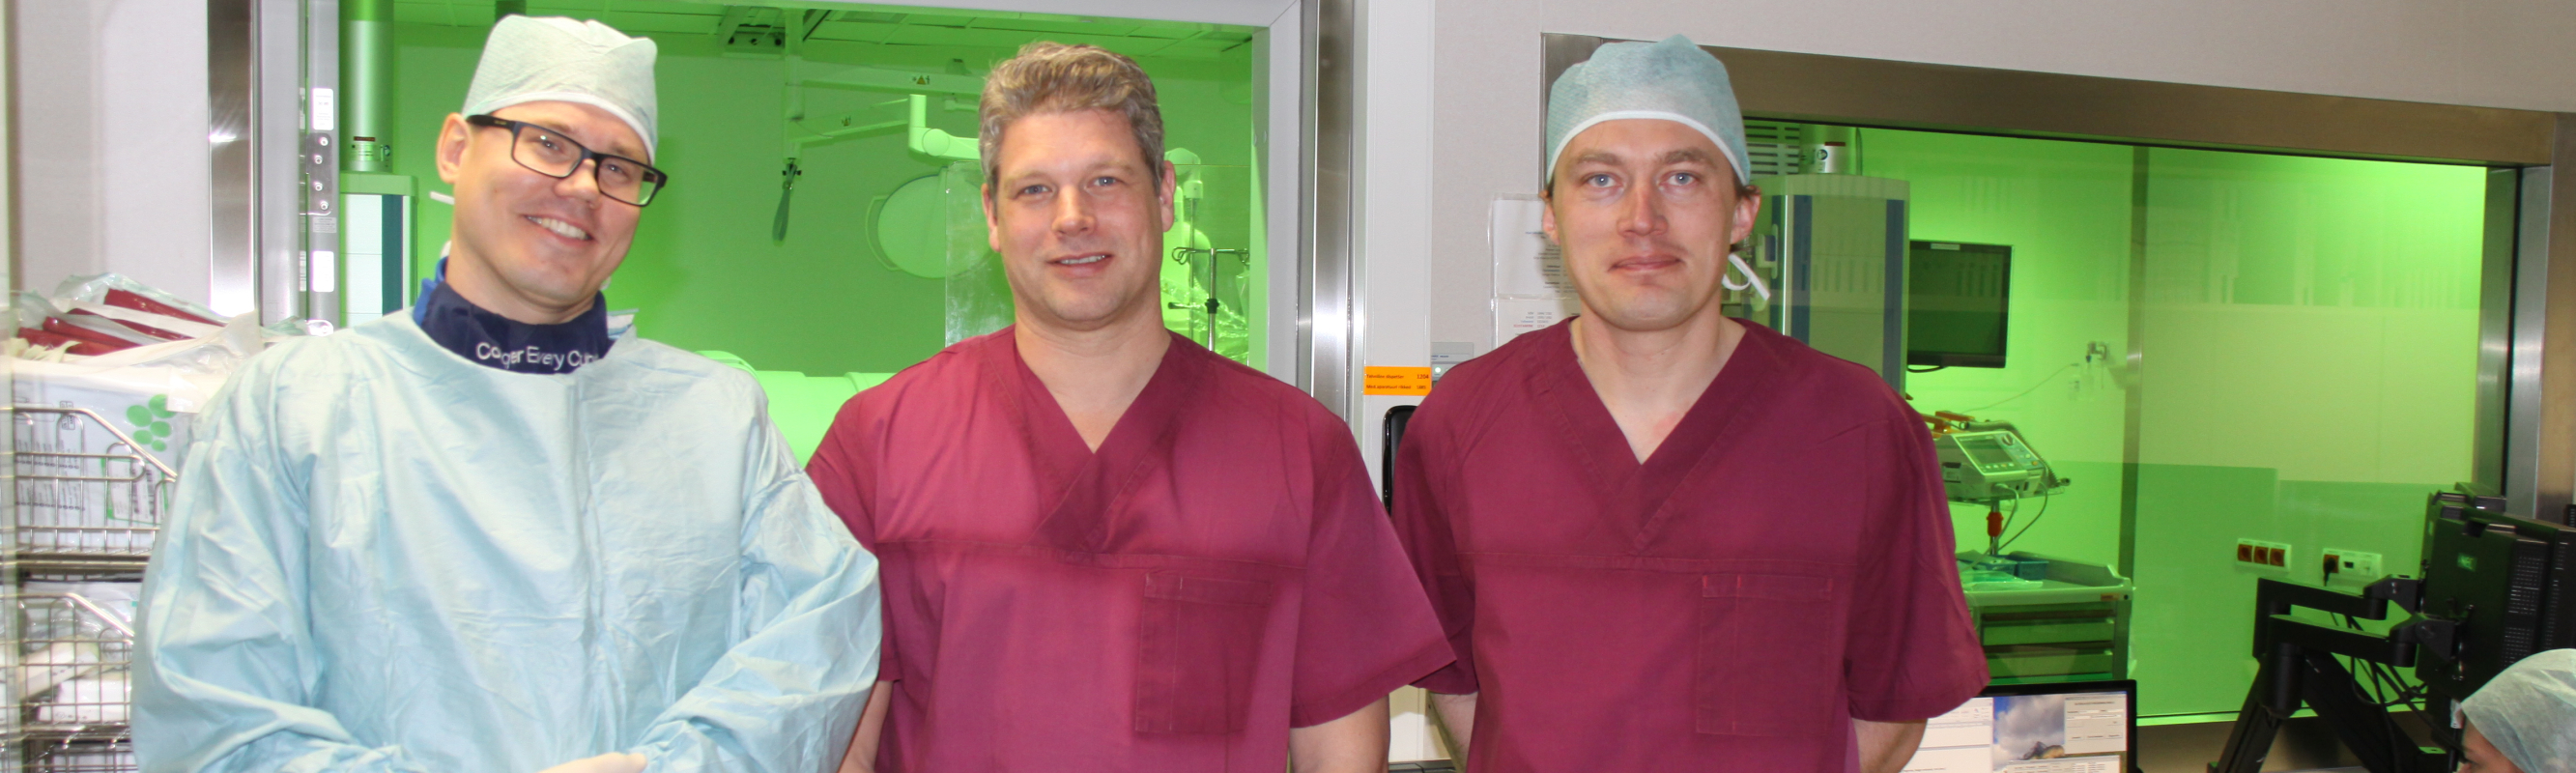 Dr Kaido Hanni, dr Erik Wissner and dr Priit Kampus after the procedure